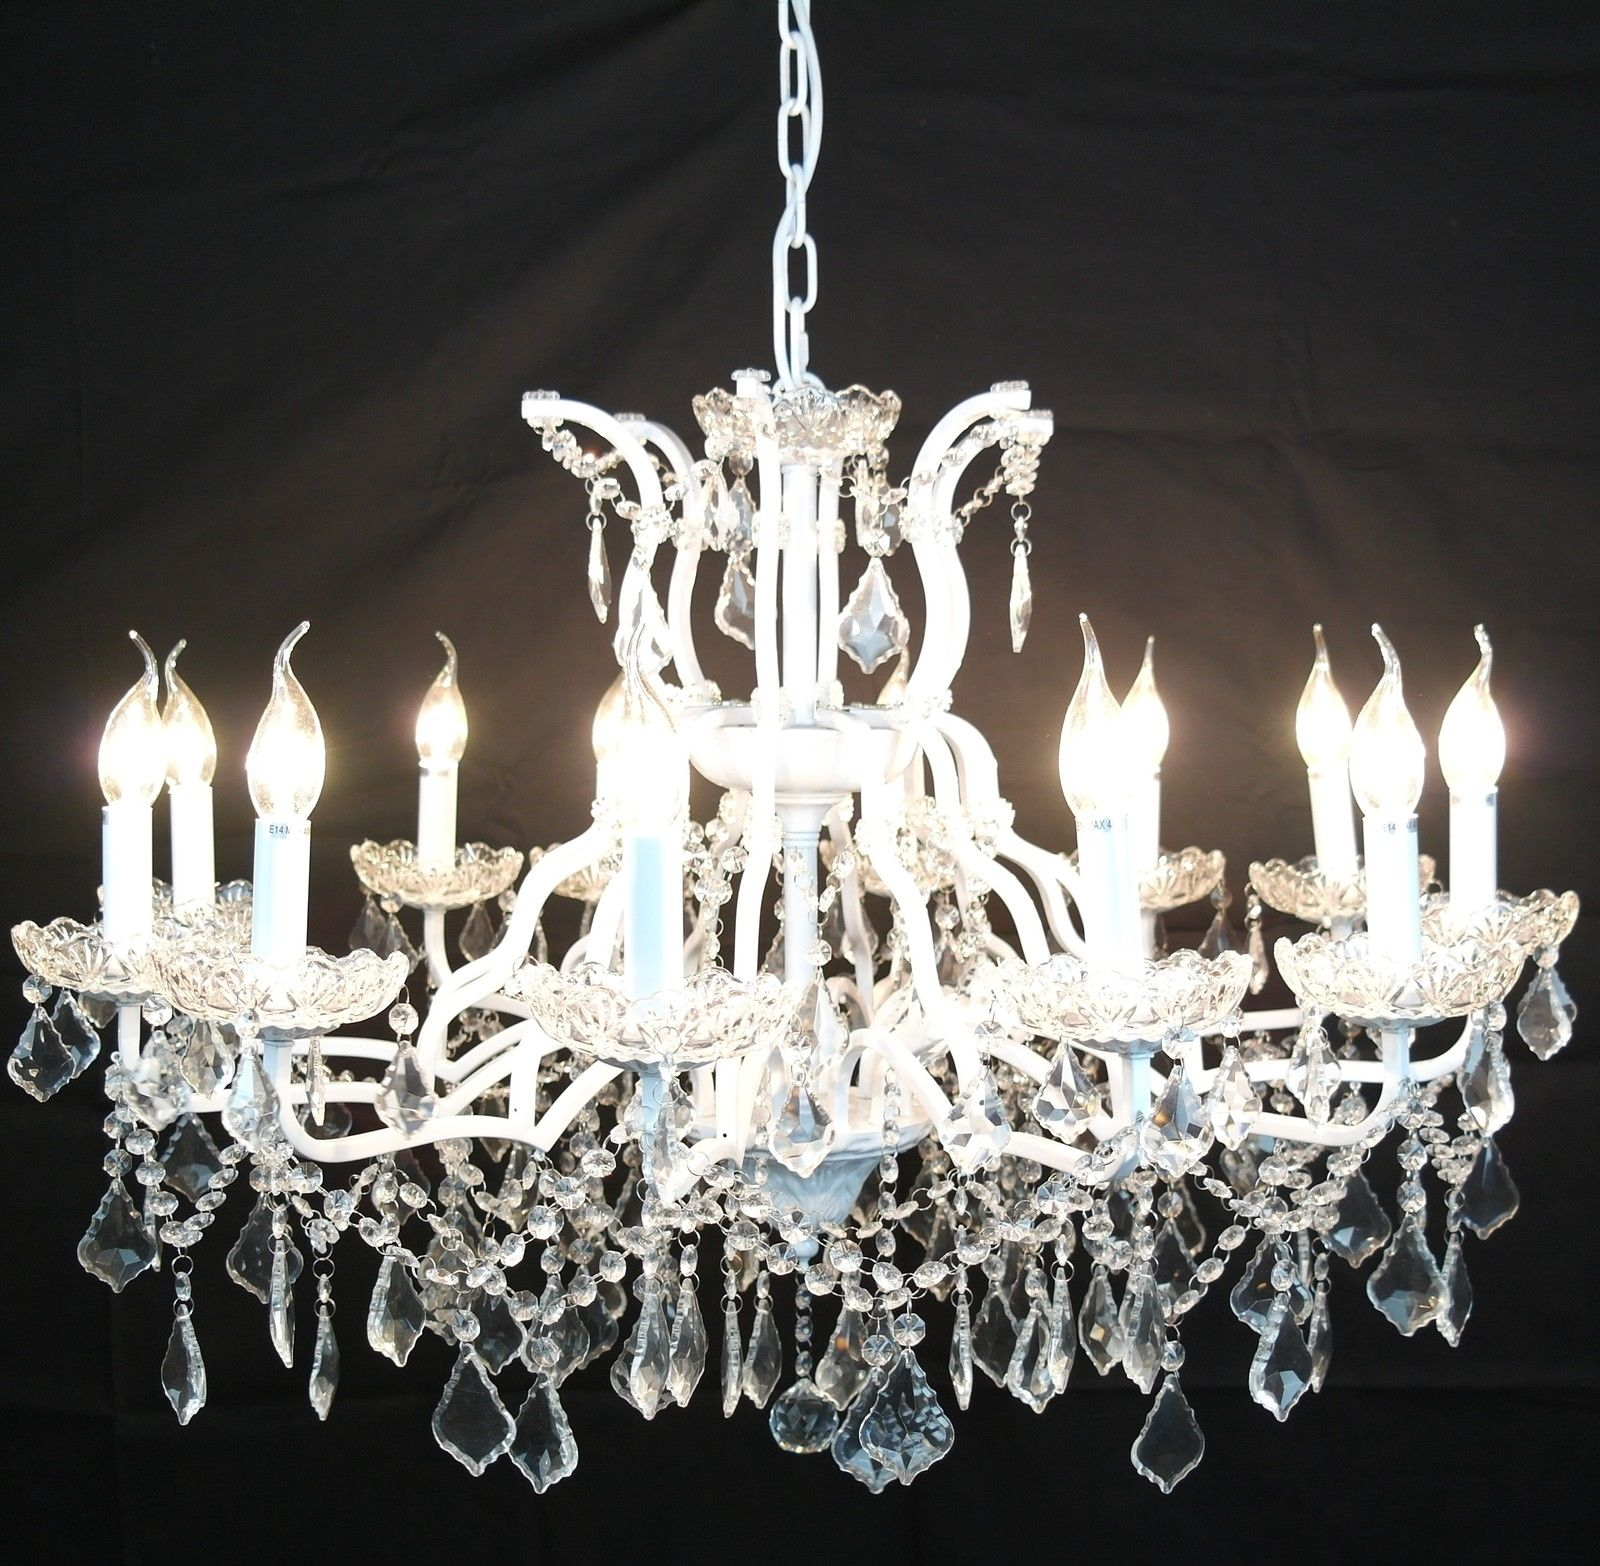 Large 12 Branch Arm White Shallow Cut Glass Chandelier